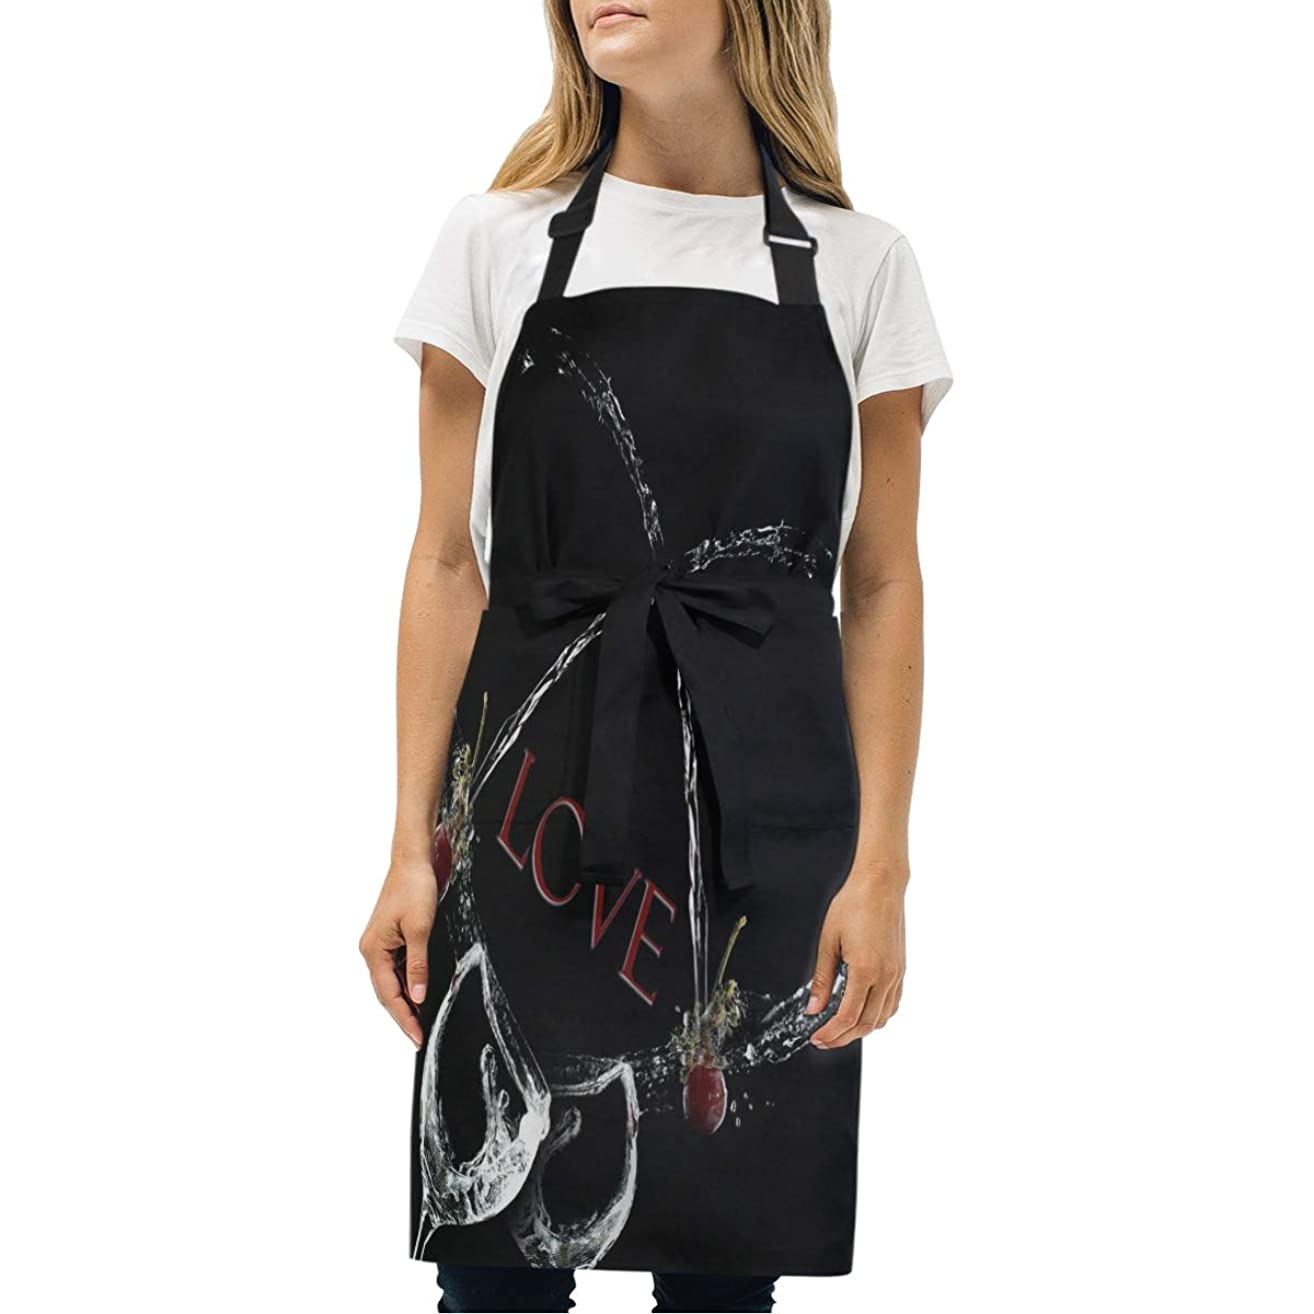 Womens Aprons Love Wallpaper Kitchen Bib Aprons with Pockets Adjustable Buckle on Neck